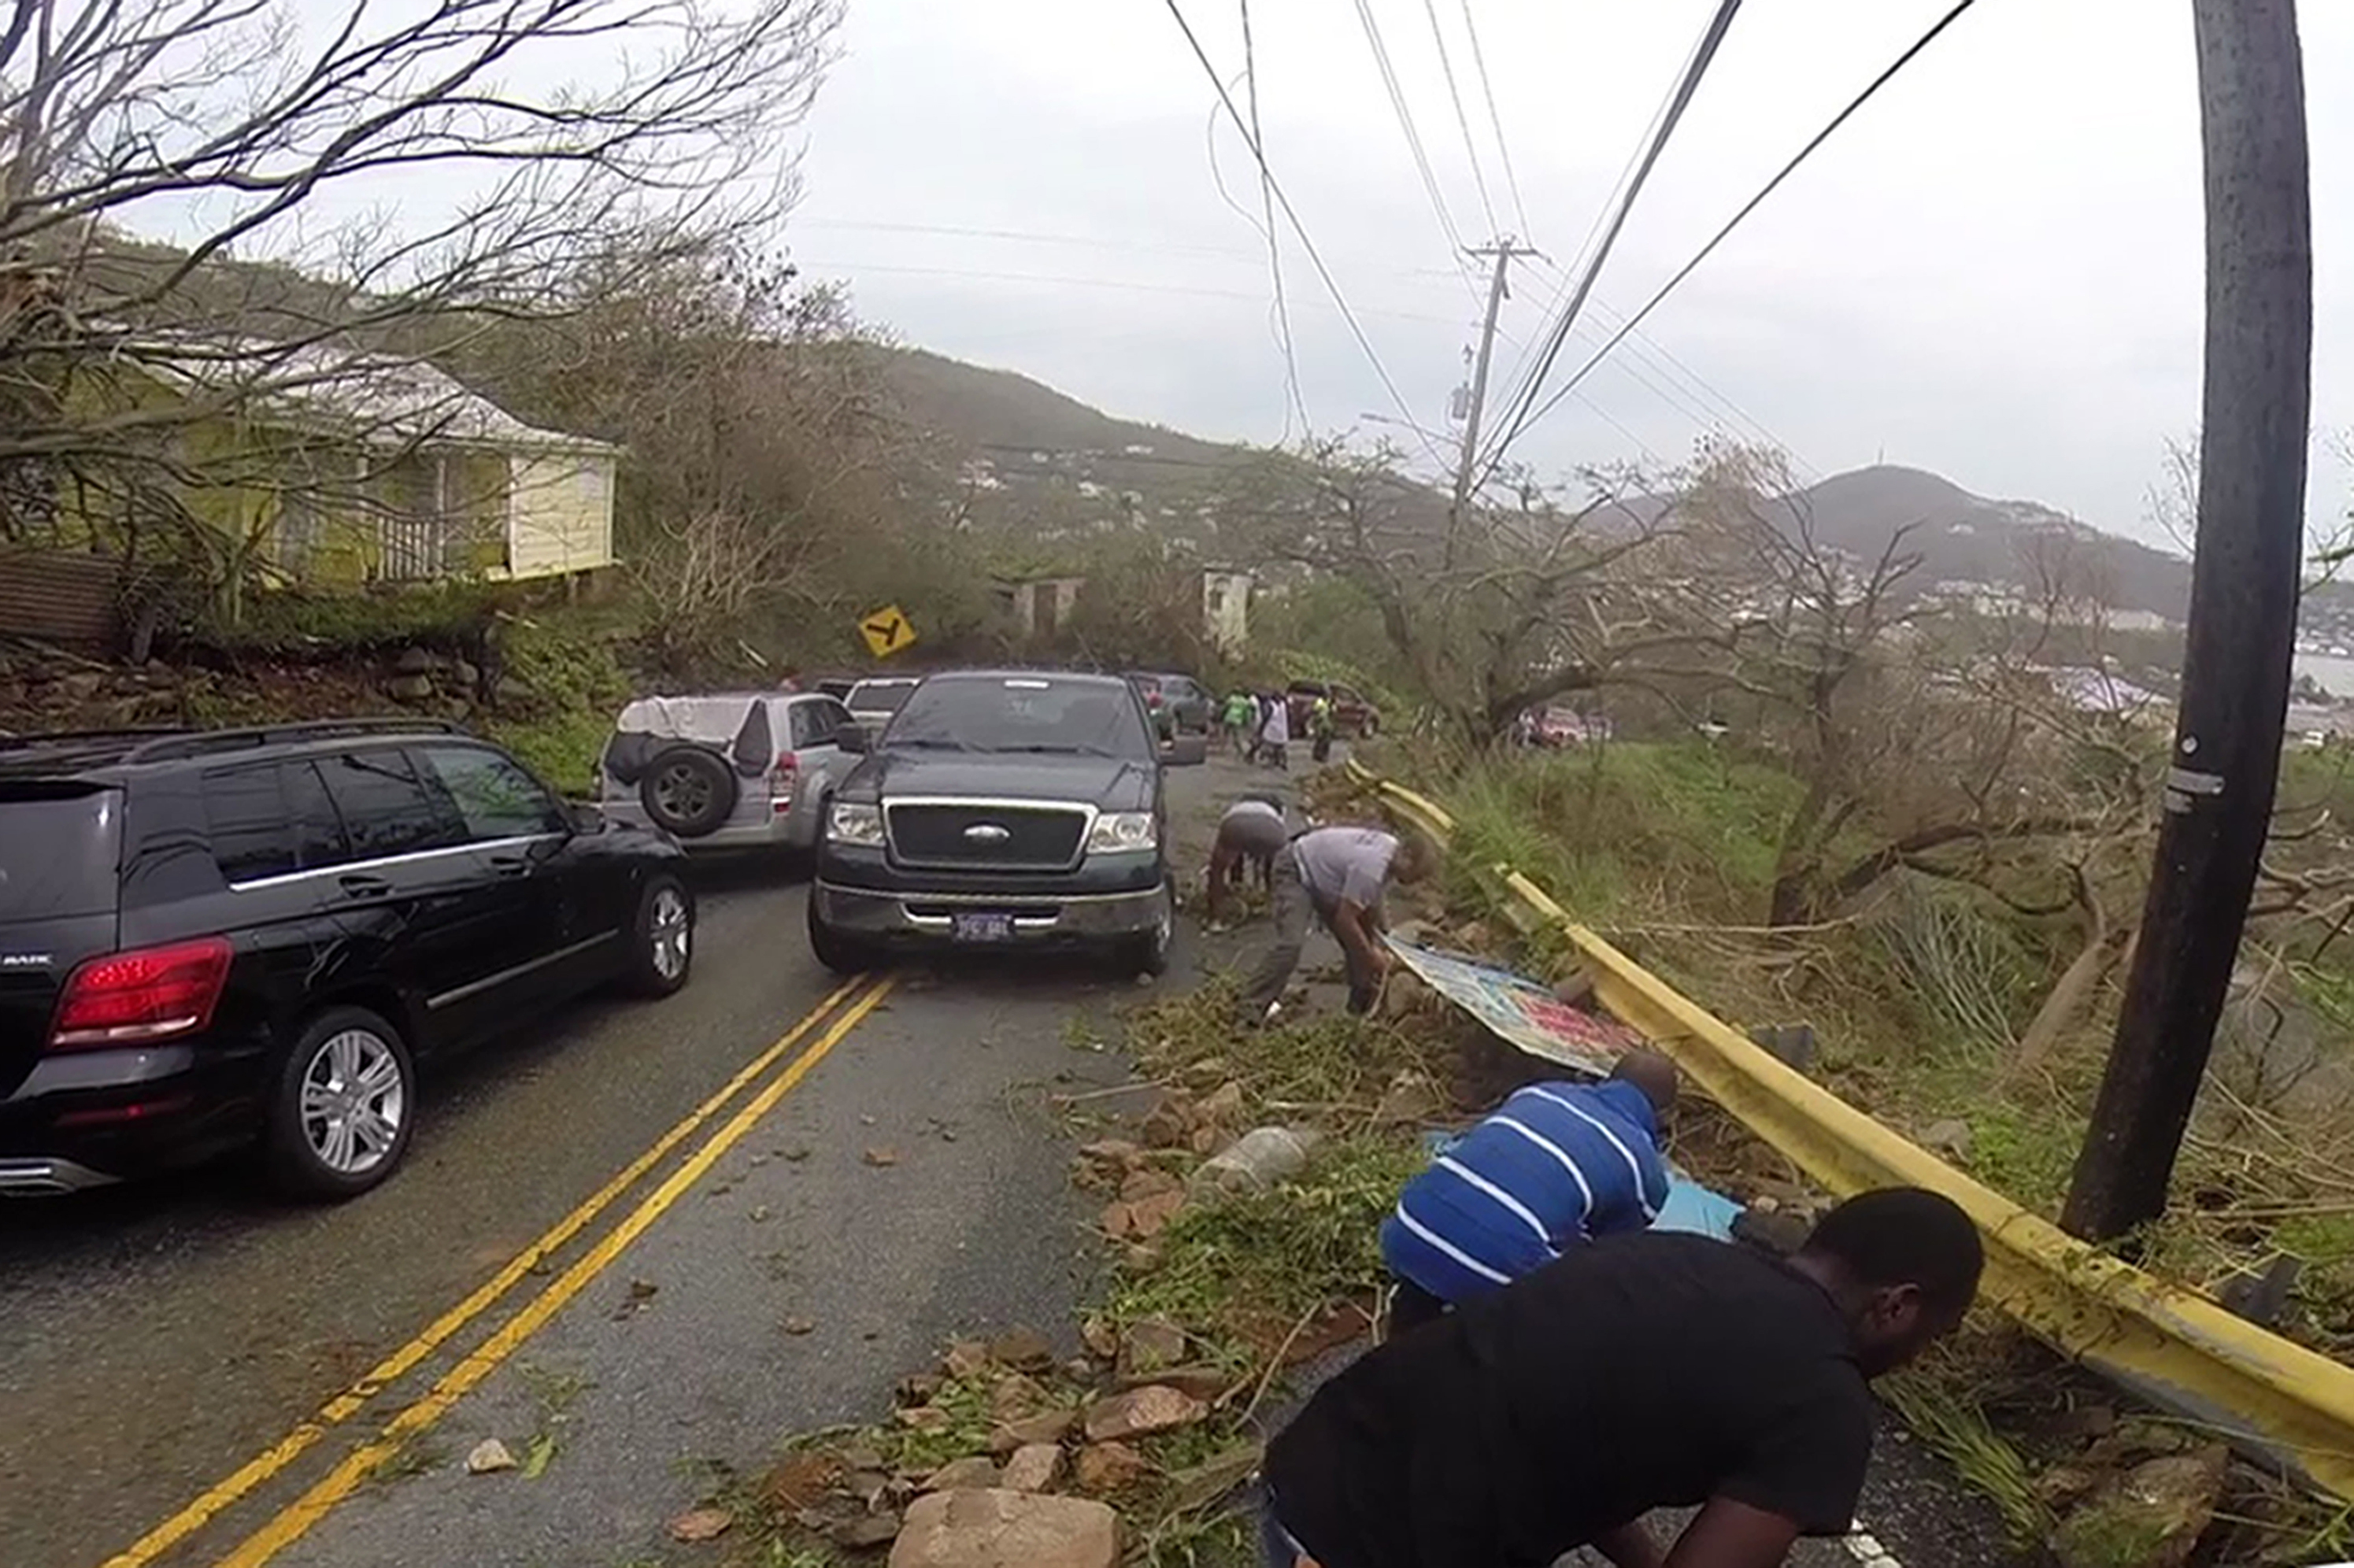 "<div class=""meta image-caption""><div class=""origin-logo origin-image none""><span>none</span></div><span class=""caption-text"">In this image made from video, motorists remove debris caused by Hurricane Irma from the road in St. Thomas, U.S. Virgin Islands, Thursday, Sept. 7, 2017. (Ian Brown/AP Photo)</span></div>"